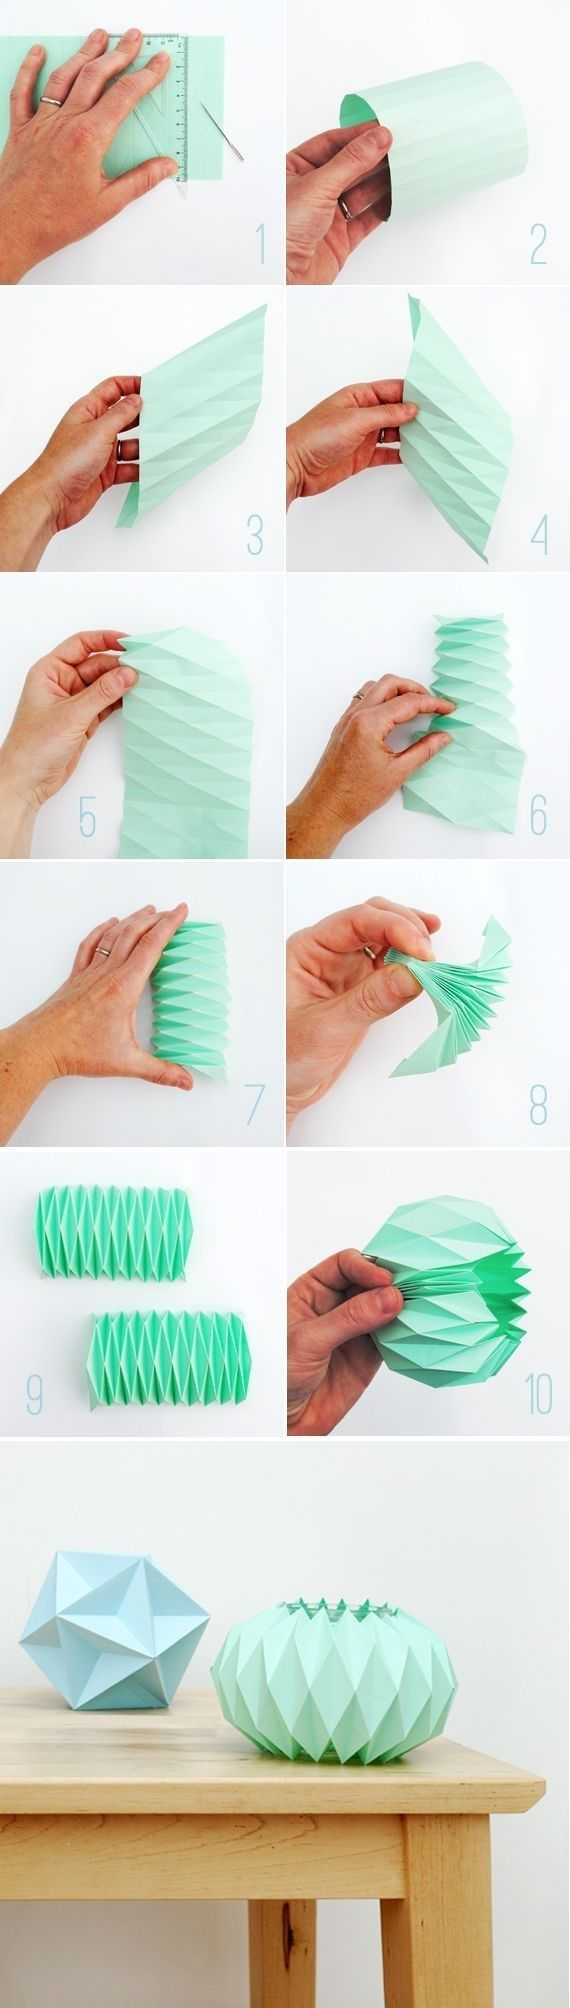 Bored? Make a lampshade! #diy #origami by Luci